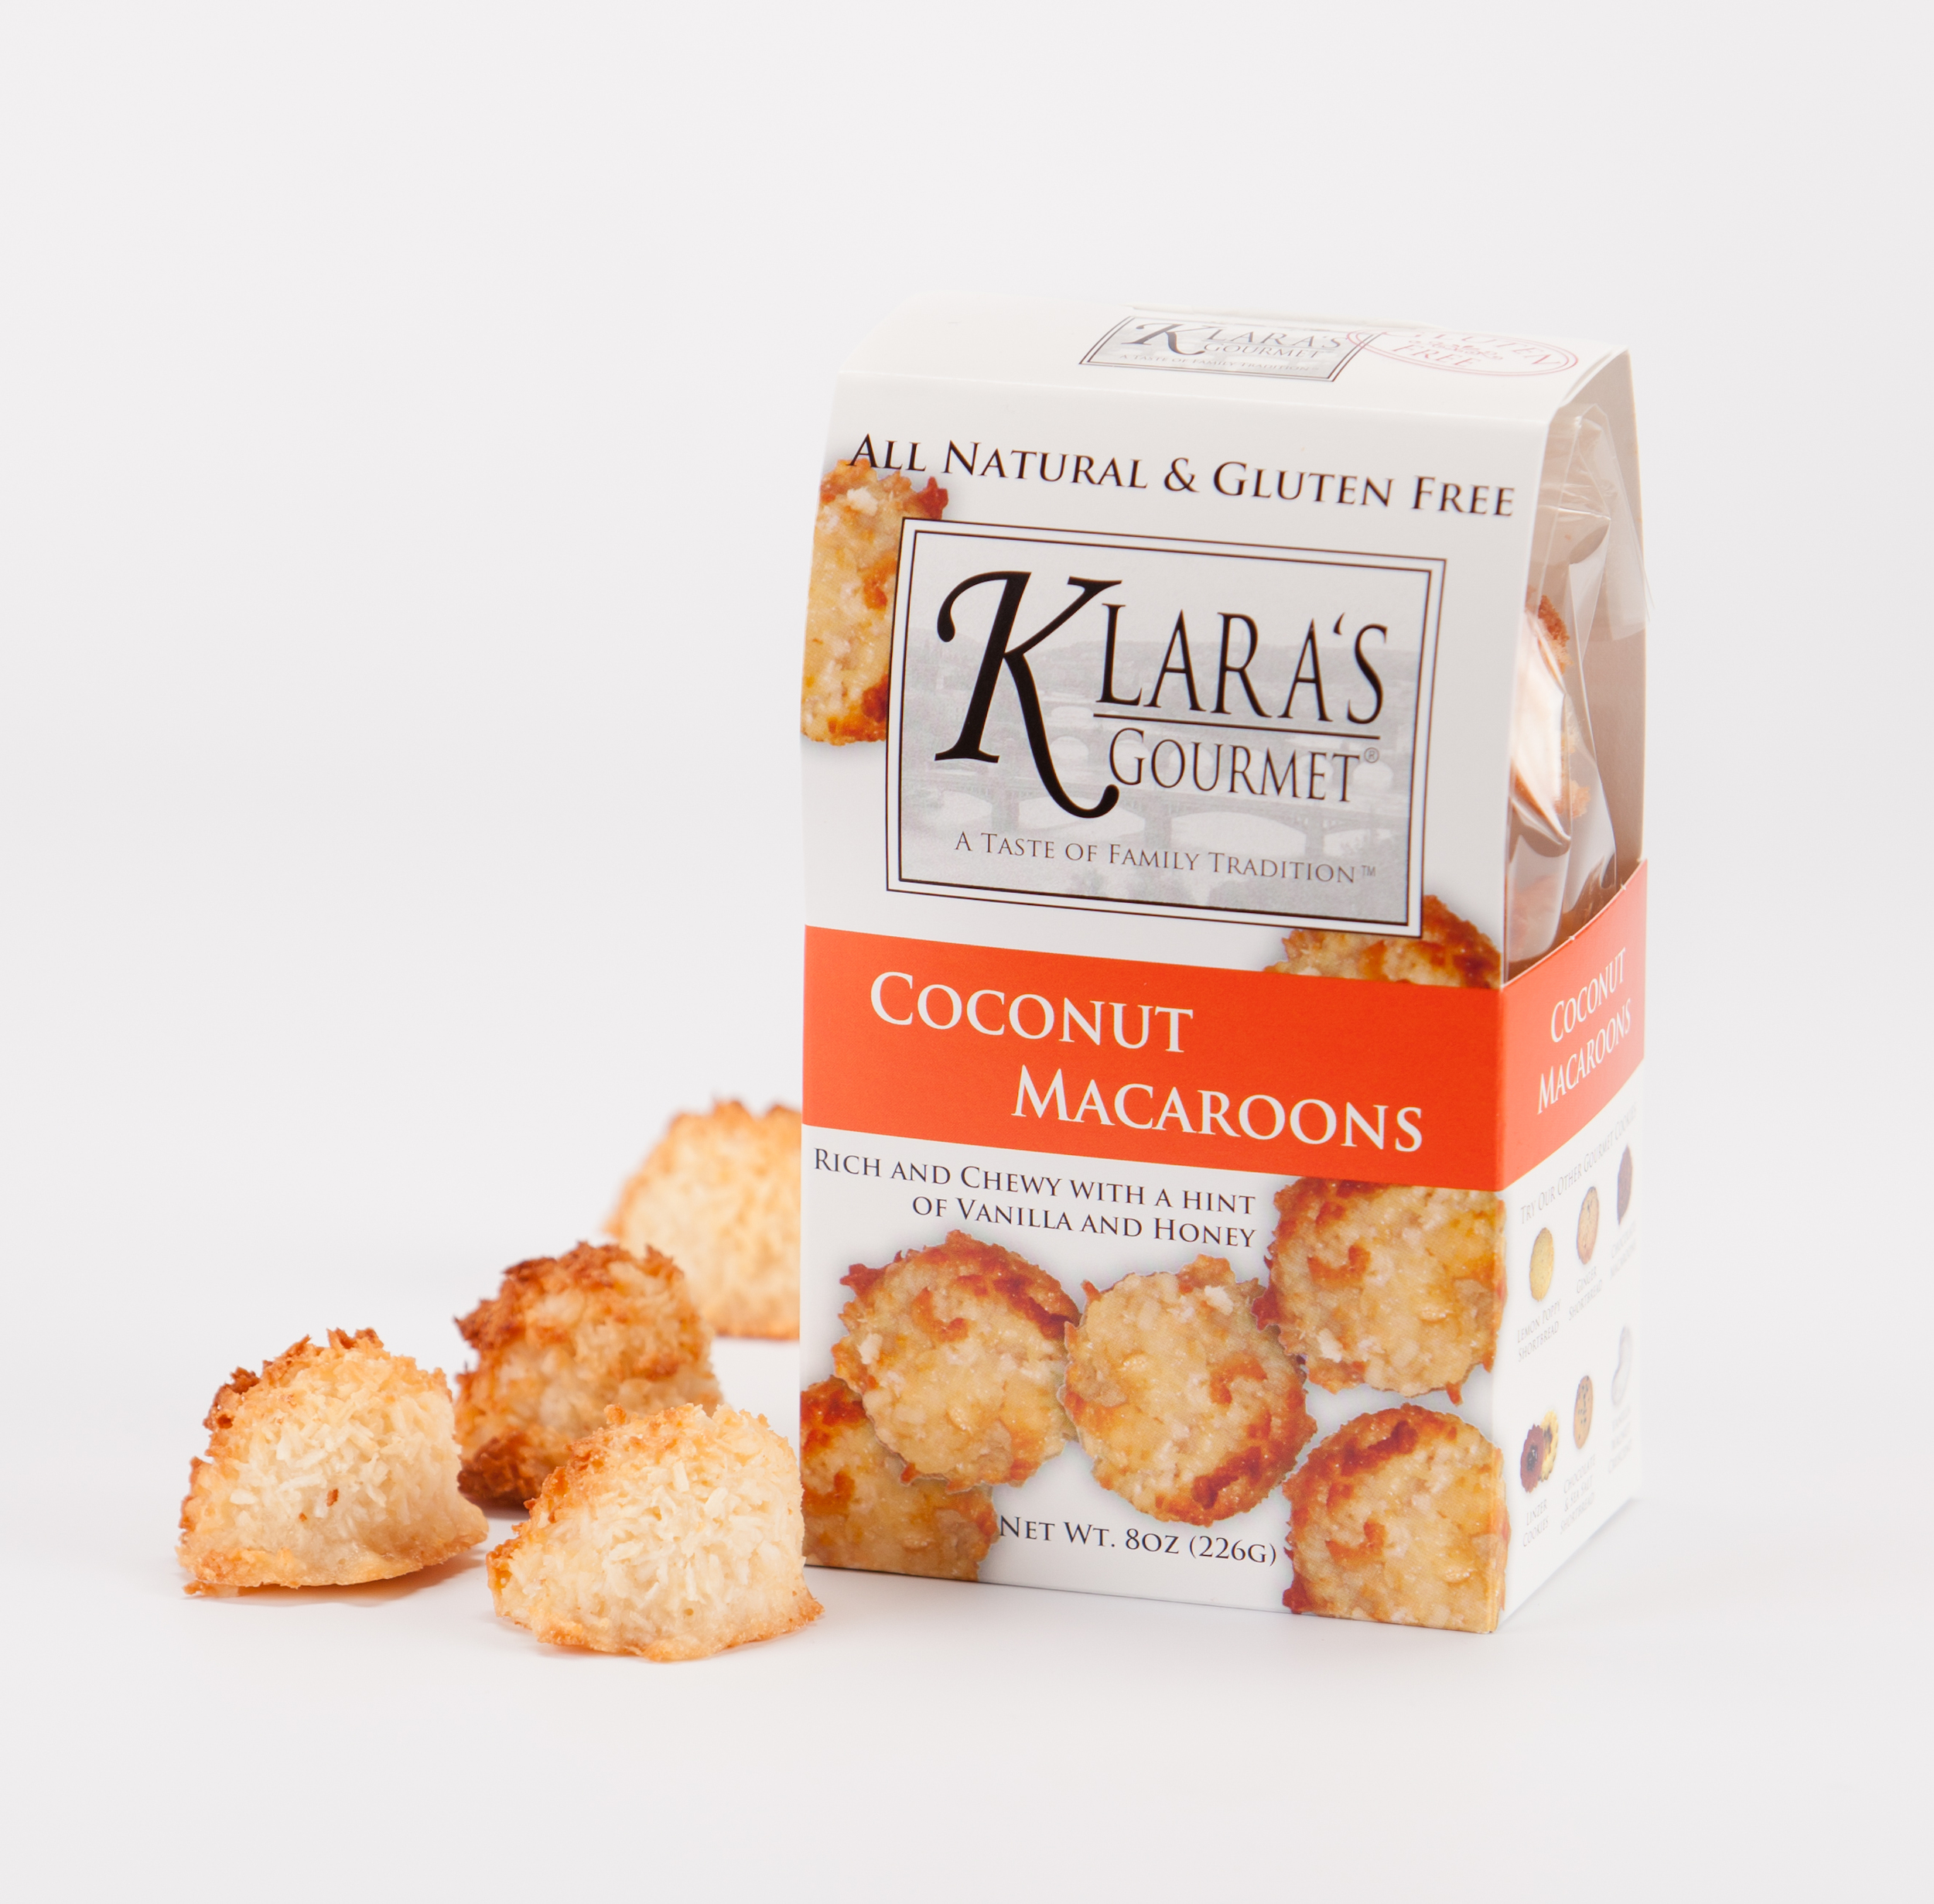 Klara's Gourmet Cookies - A Czech Family Tradition